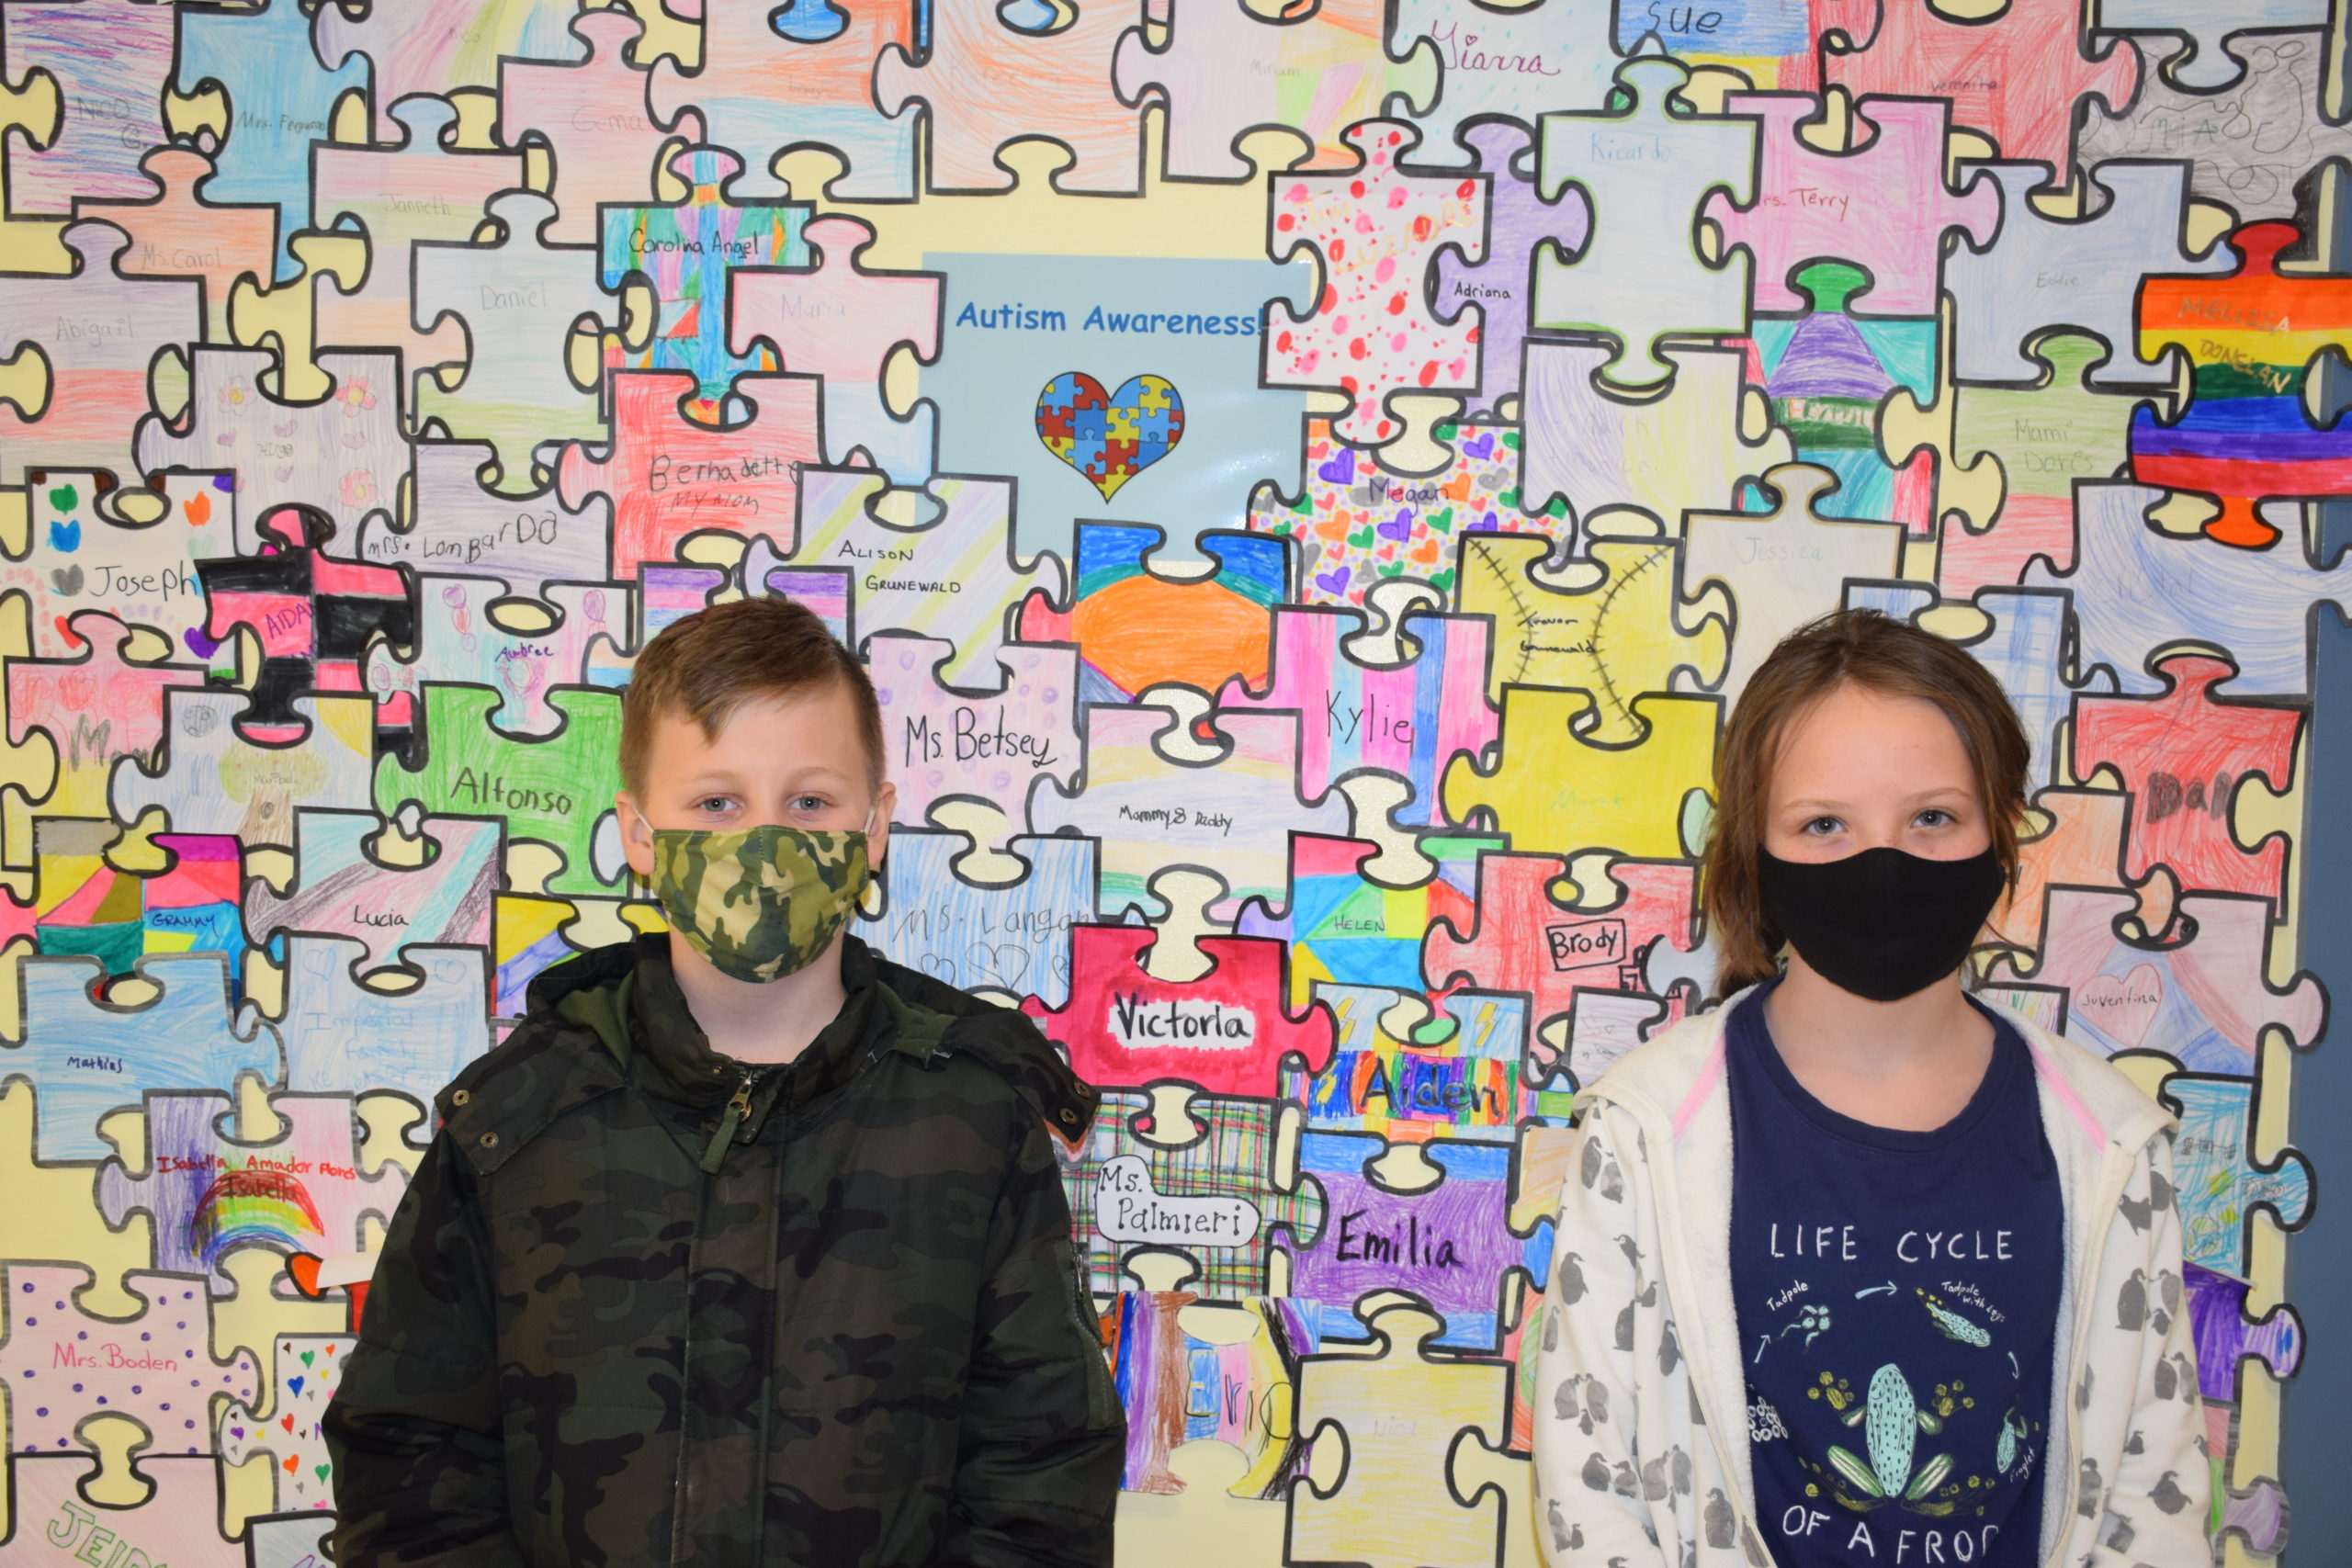 Members of Hampton Bays Elementary School's service club, K-Kids, recently raised $200 for Camp Flying Point in Southampton as part of an annual autism awareness fundraiser. The club sold paper puzzle pieces that had been colored by students and then displayed in the school's main hallway.